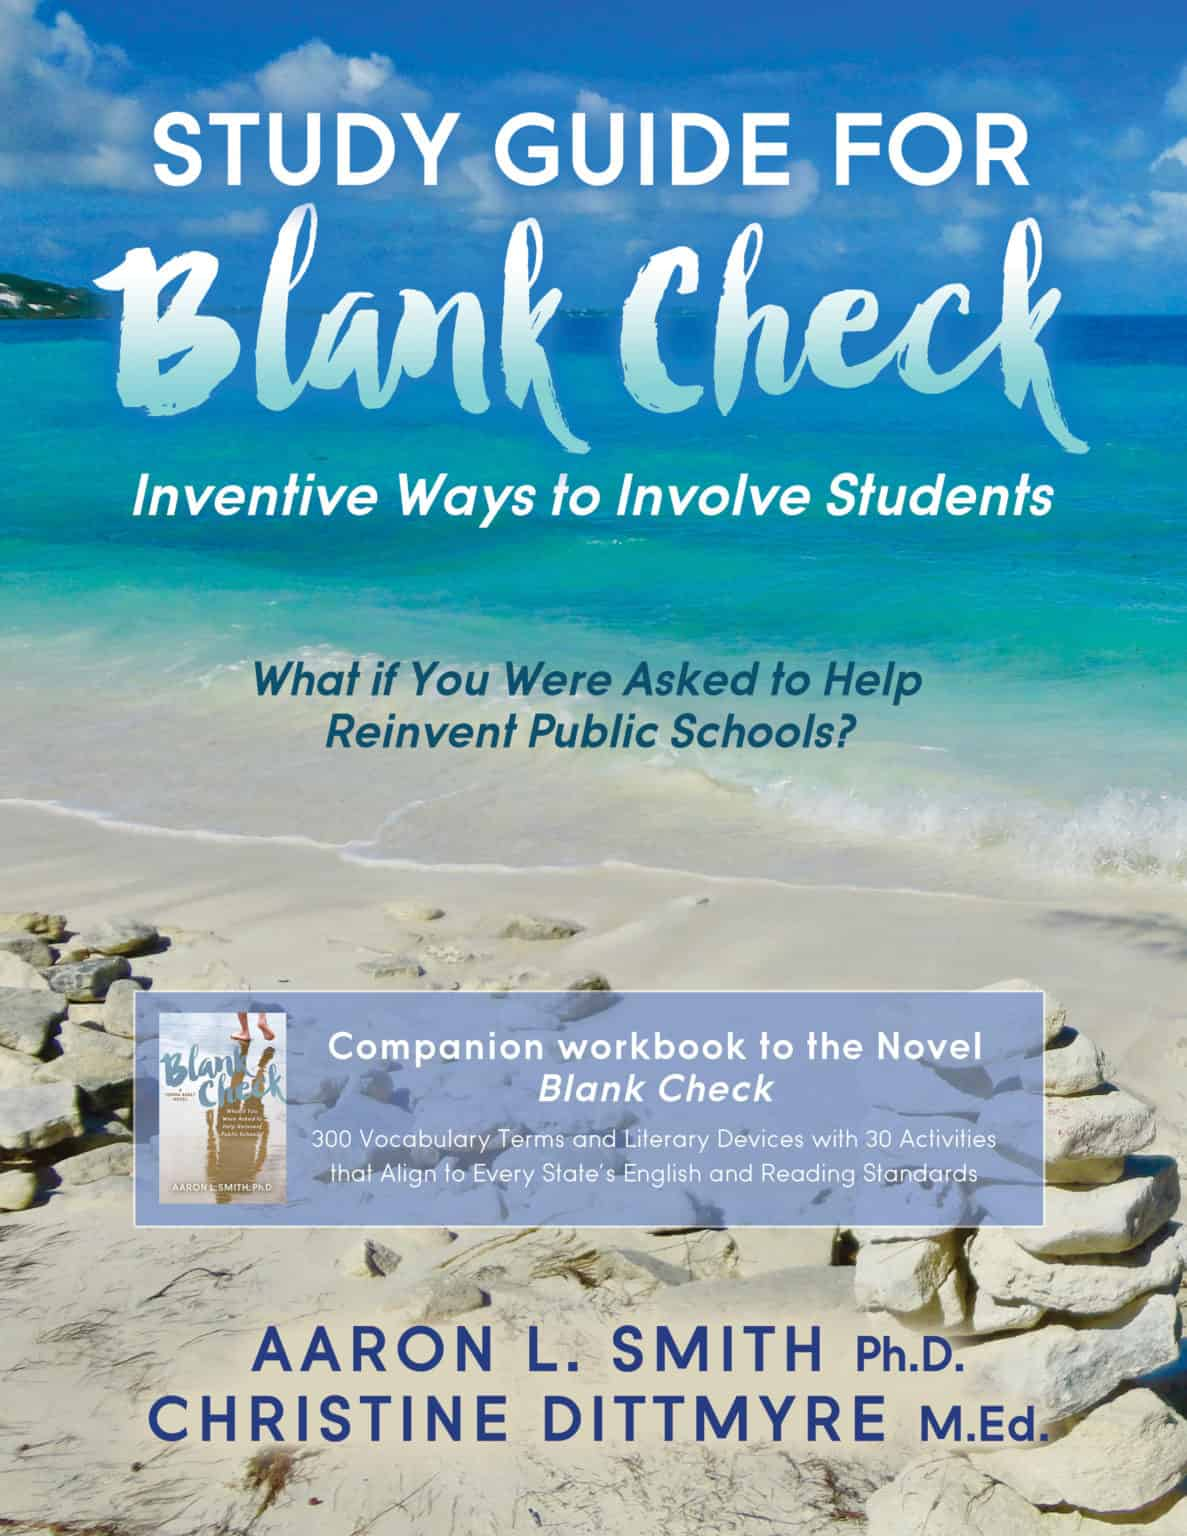 Here's the new cover to the Study Guide Blank Check that's written by Aaron L. Smith